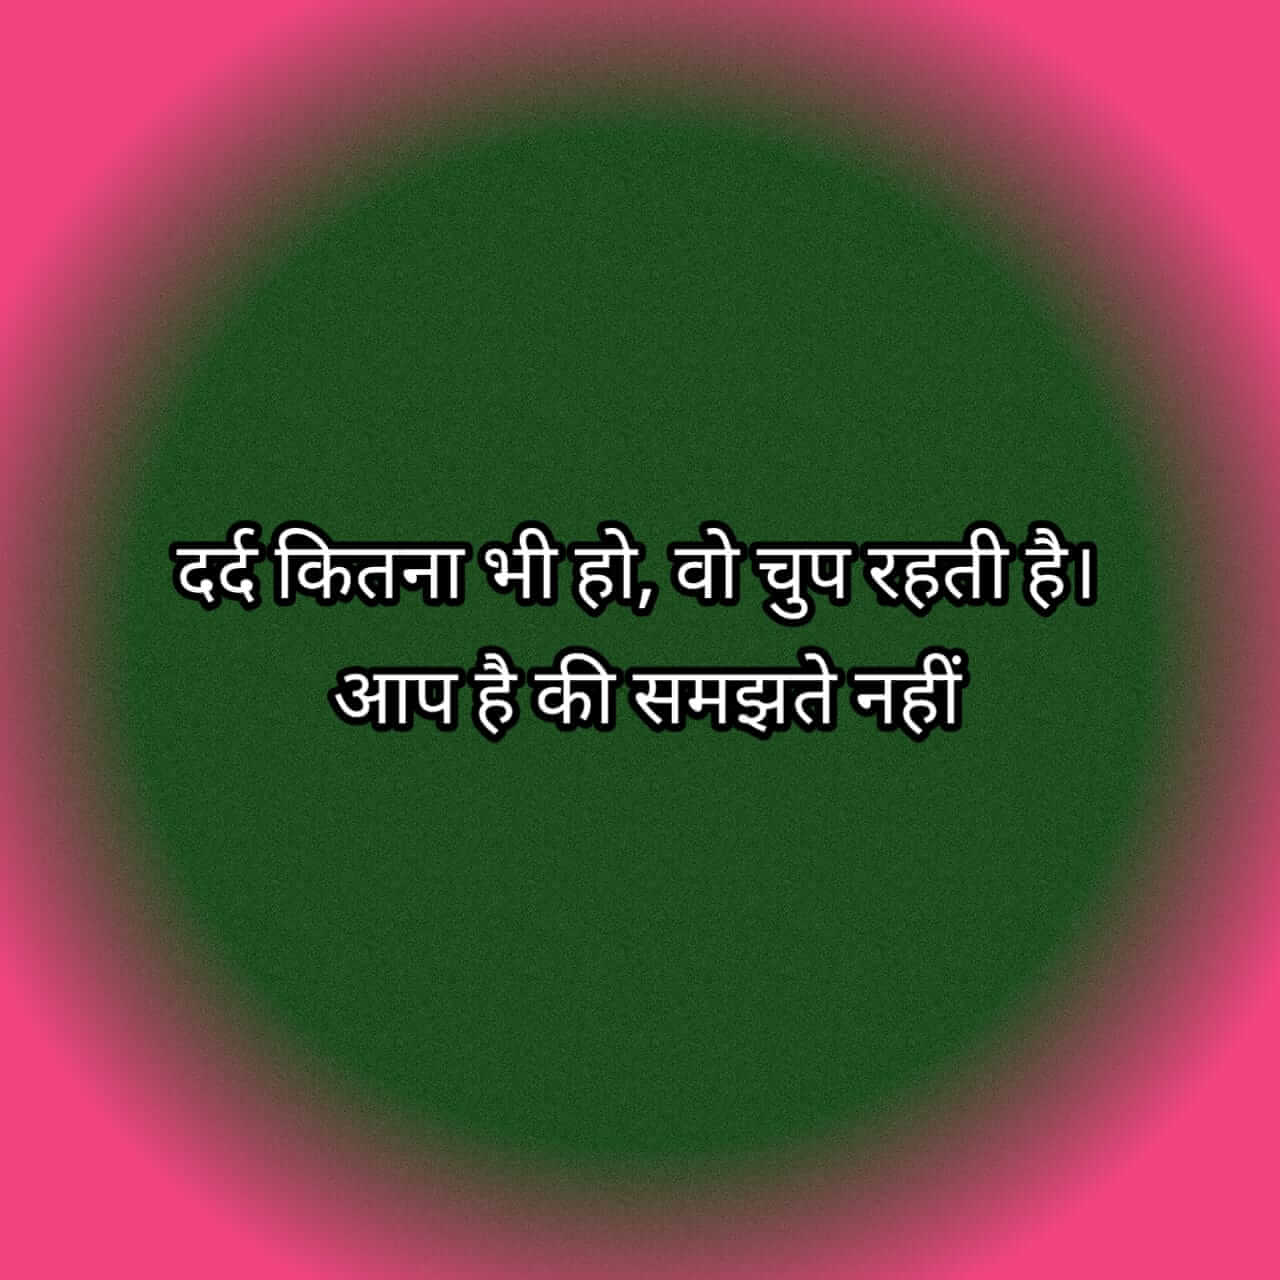 You are currently viewing (Top- 25) Emotional Quotes on Husband-Wife (पति पत्नी) Relationship in Hindi